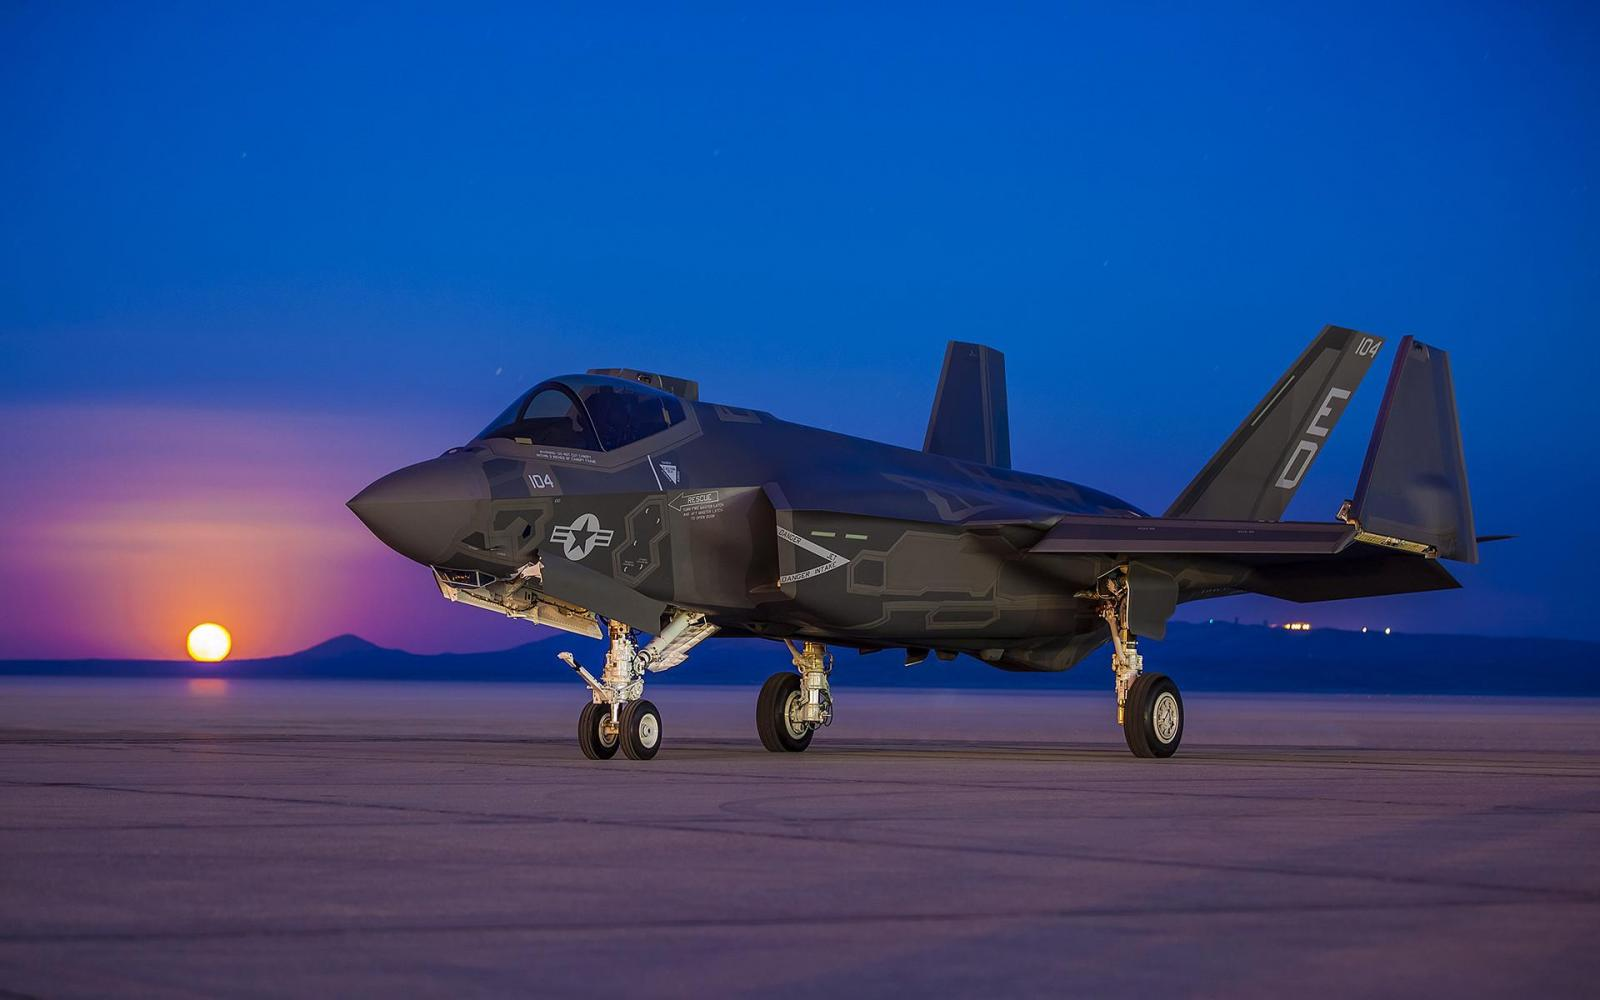 lockheed-martin-f-35-lightning-ii-stealth-fighter-wallpaper-preview.jpg